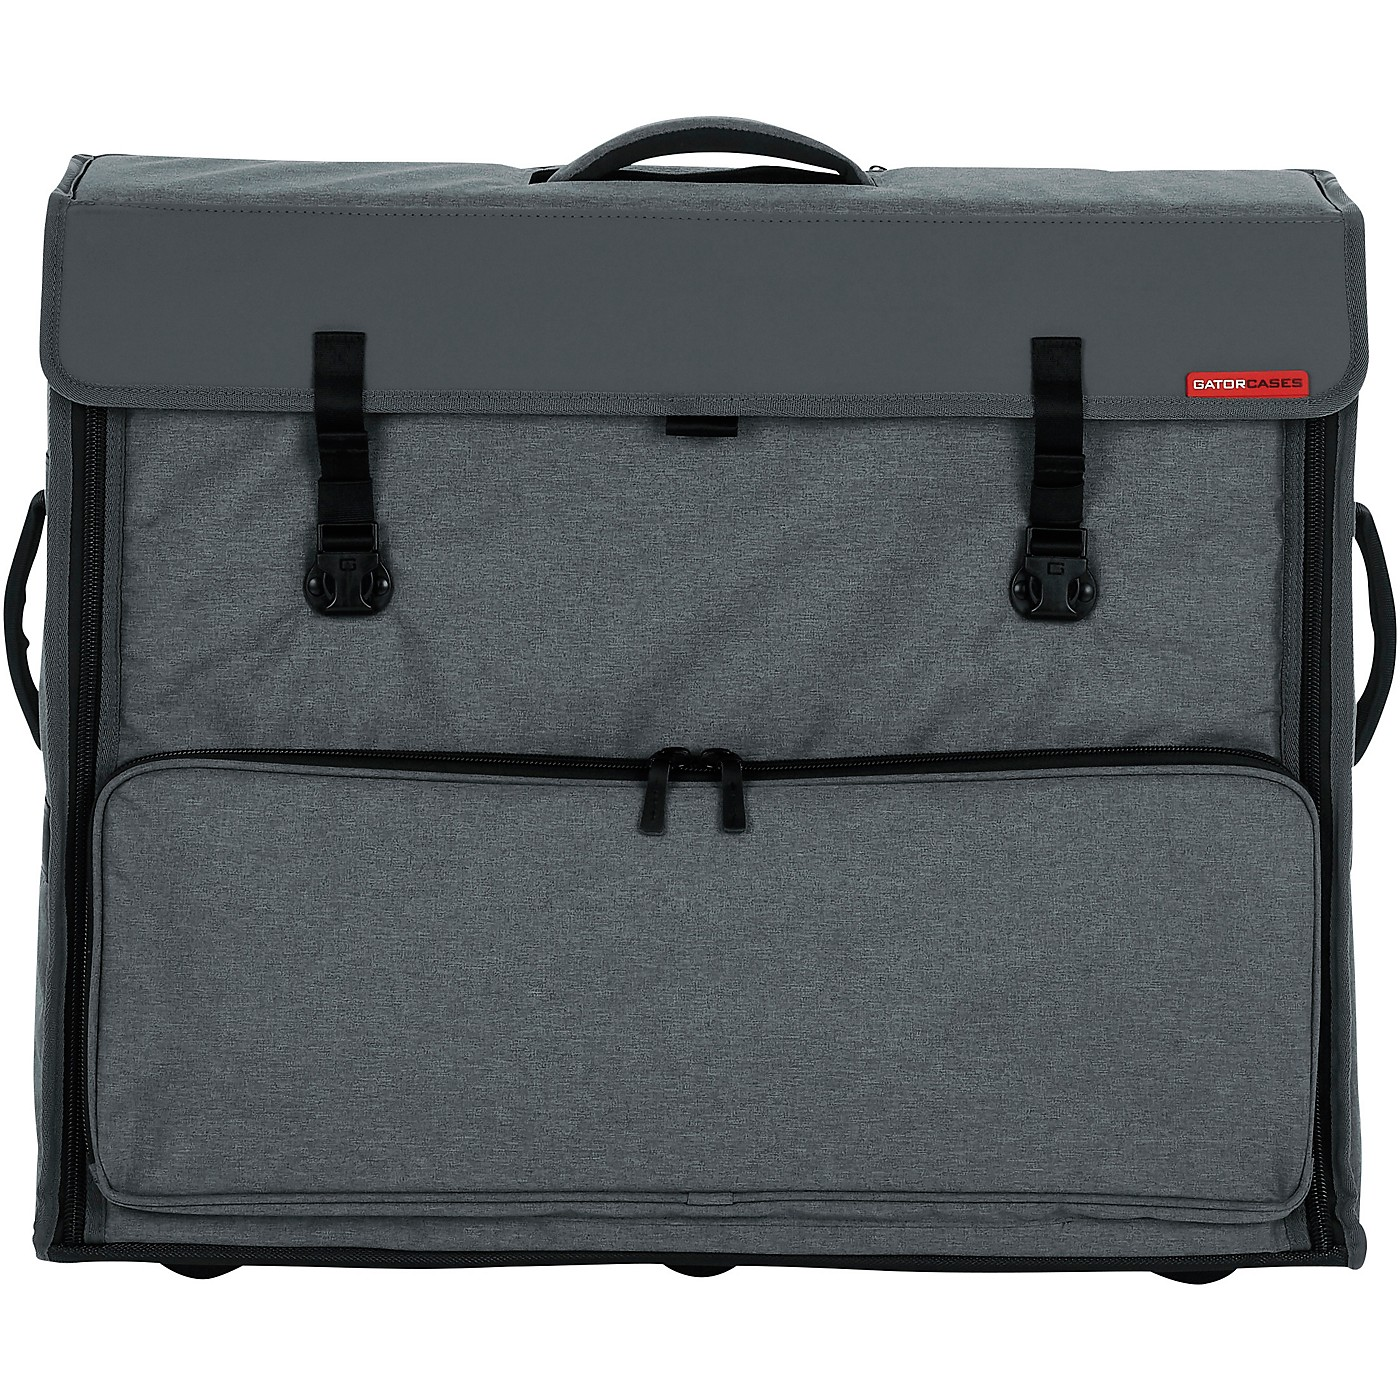 Gator iMac Tote Bag with Wheels for 27″ iMac Computer - G-CPR-IM27W thumbnail